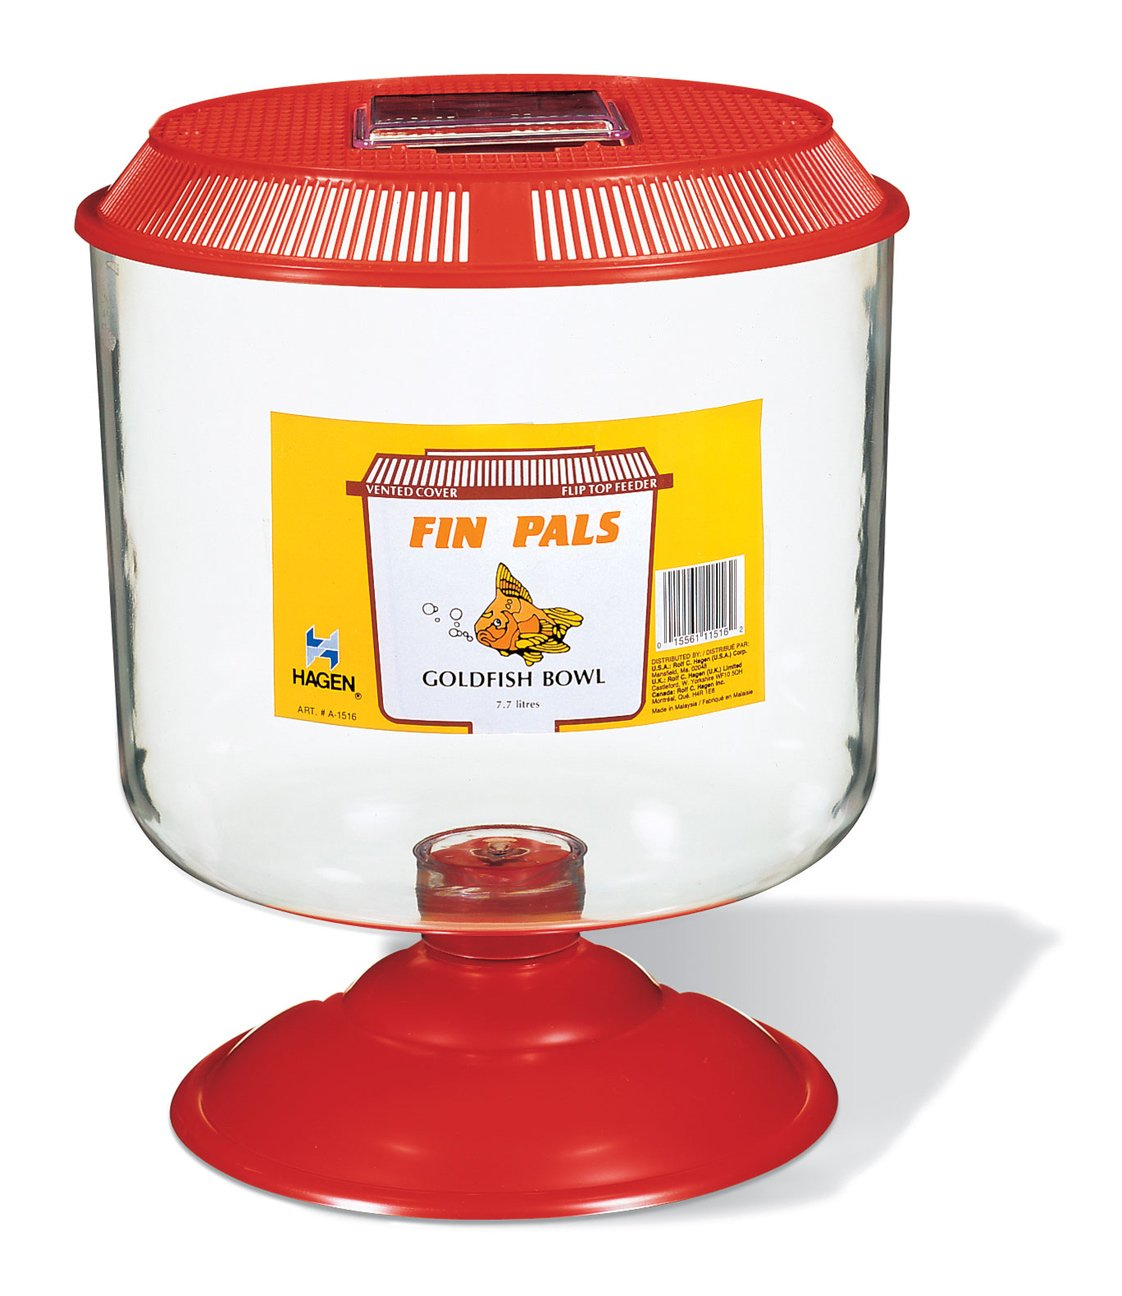 Amazon.com : Fin Pals Goldfish Bowl, Colors may vary : Fish Bowls ...